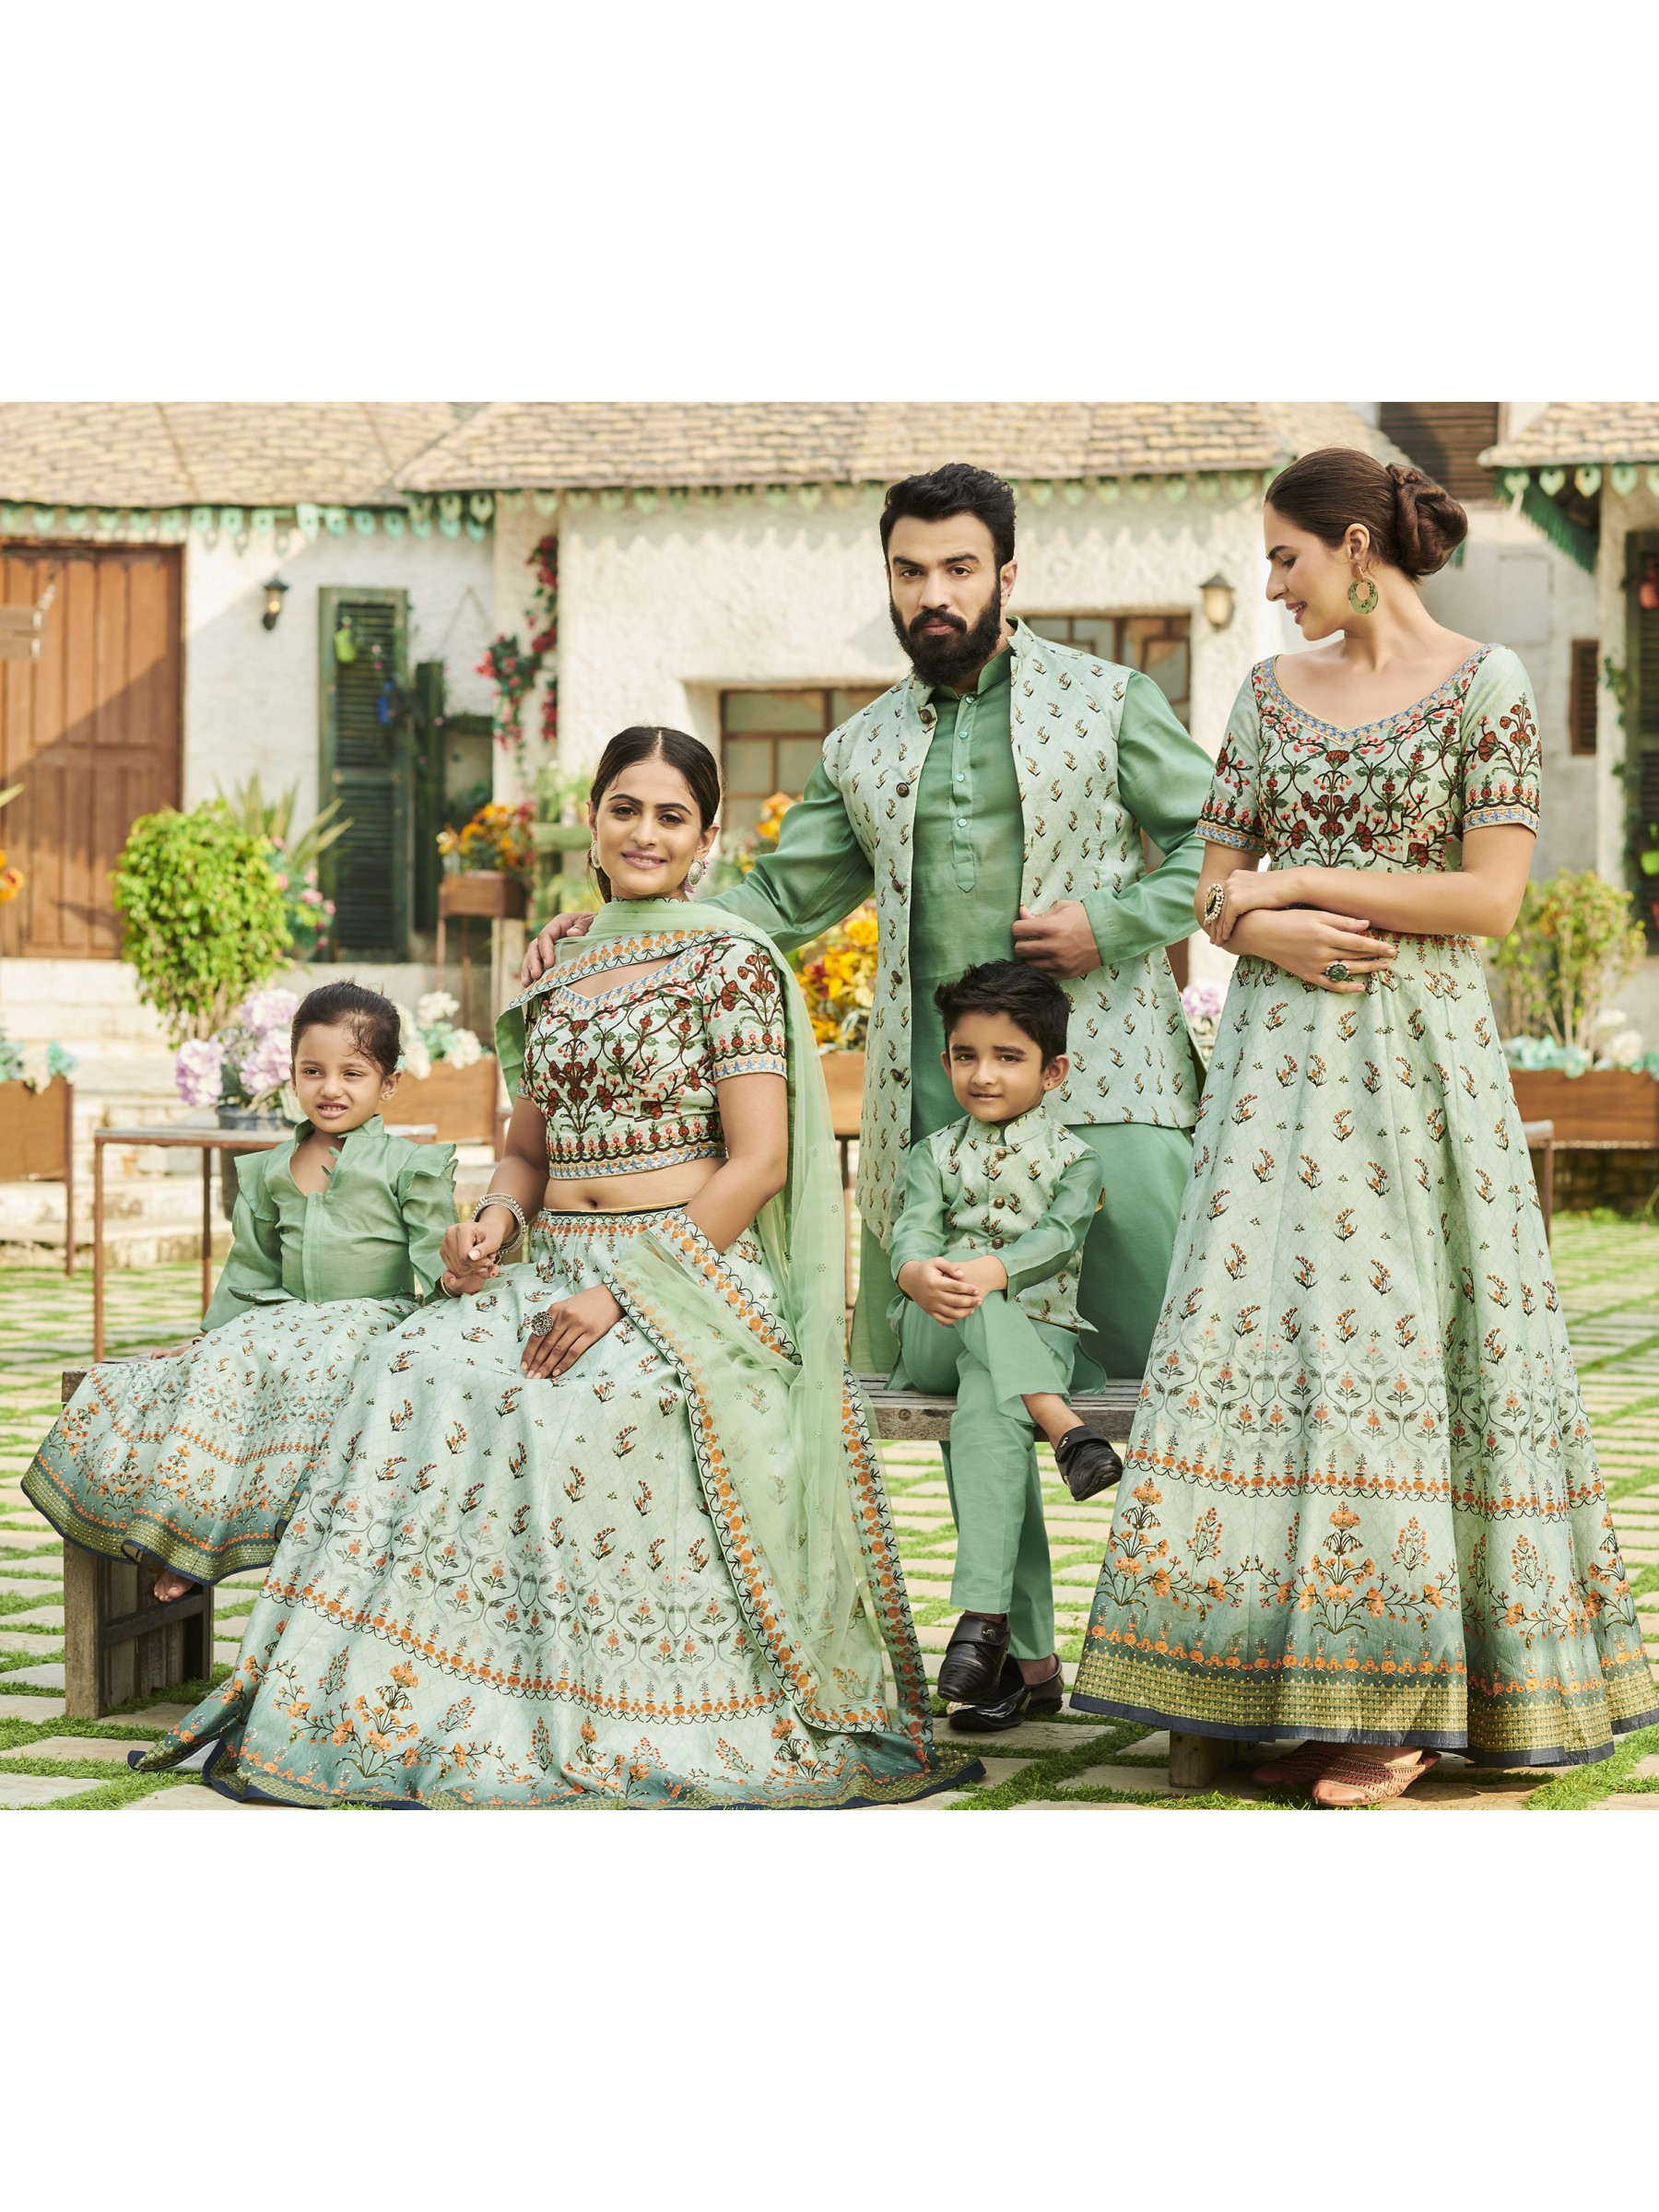 Pure Heritage Silk Wedding Wear Full Family Combo in Turquoise color Digital Print Work & Stone Work